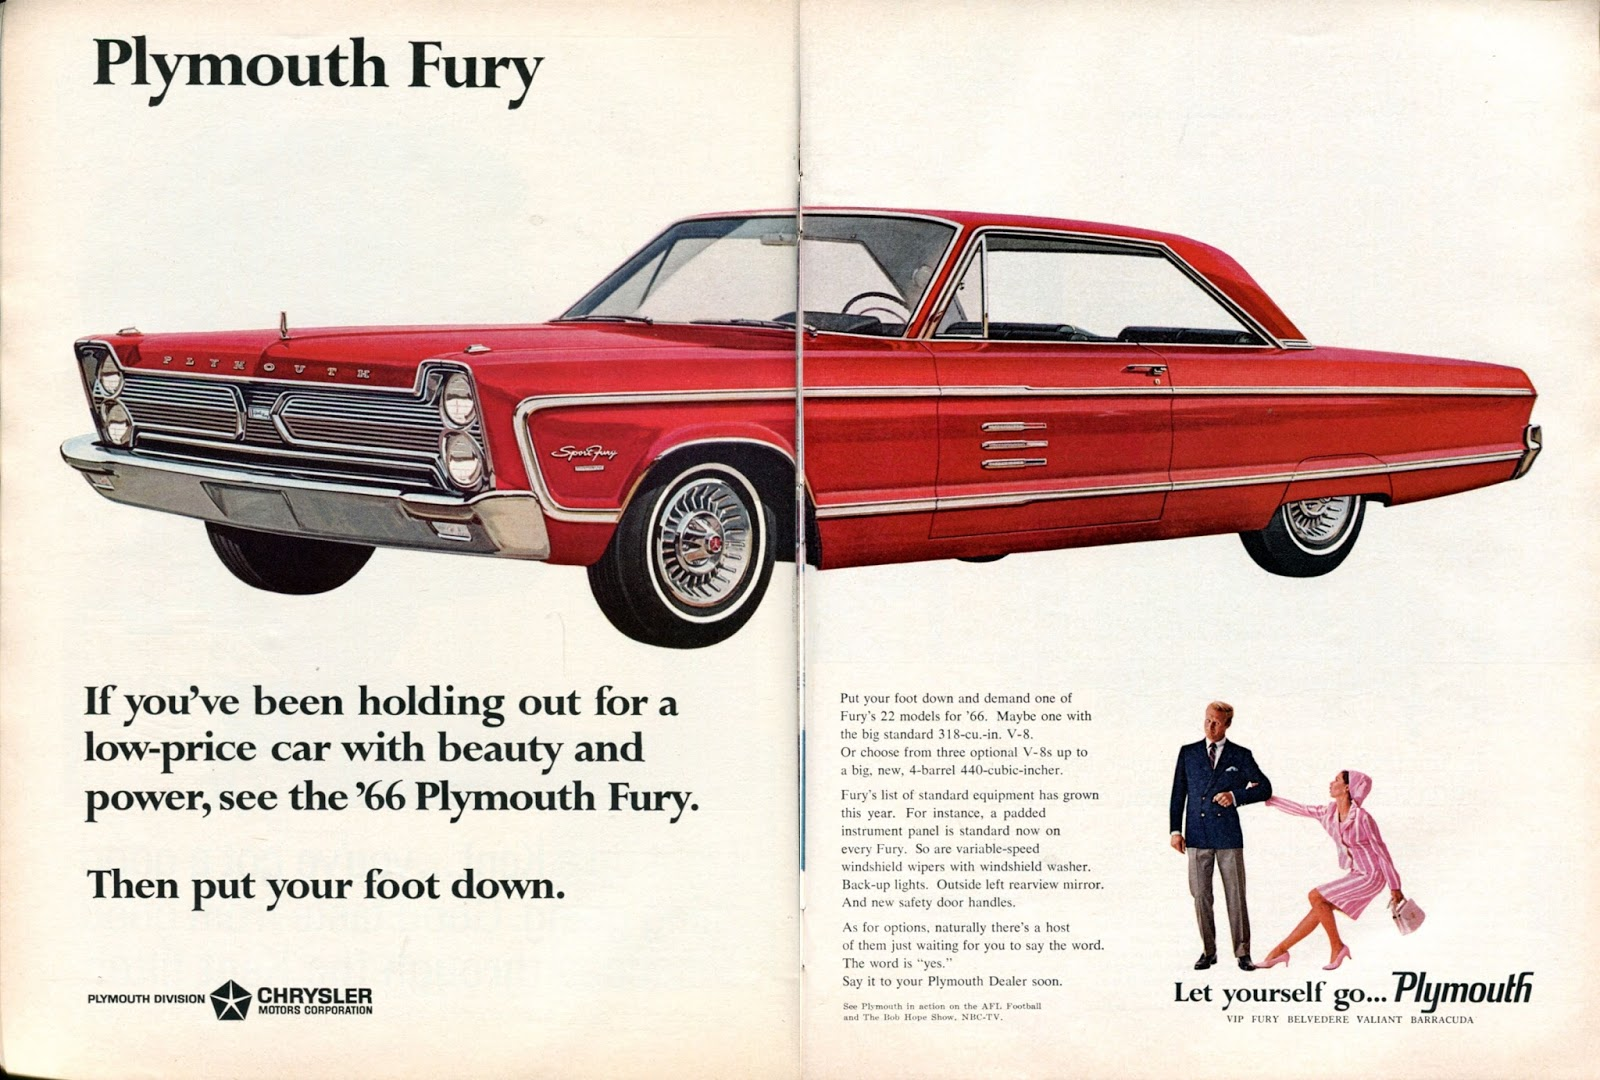 1966 Plymouth Fury - Vintage Cars Ads